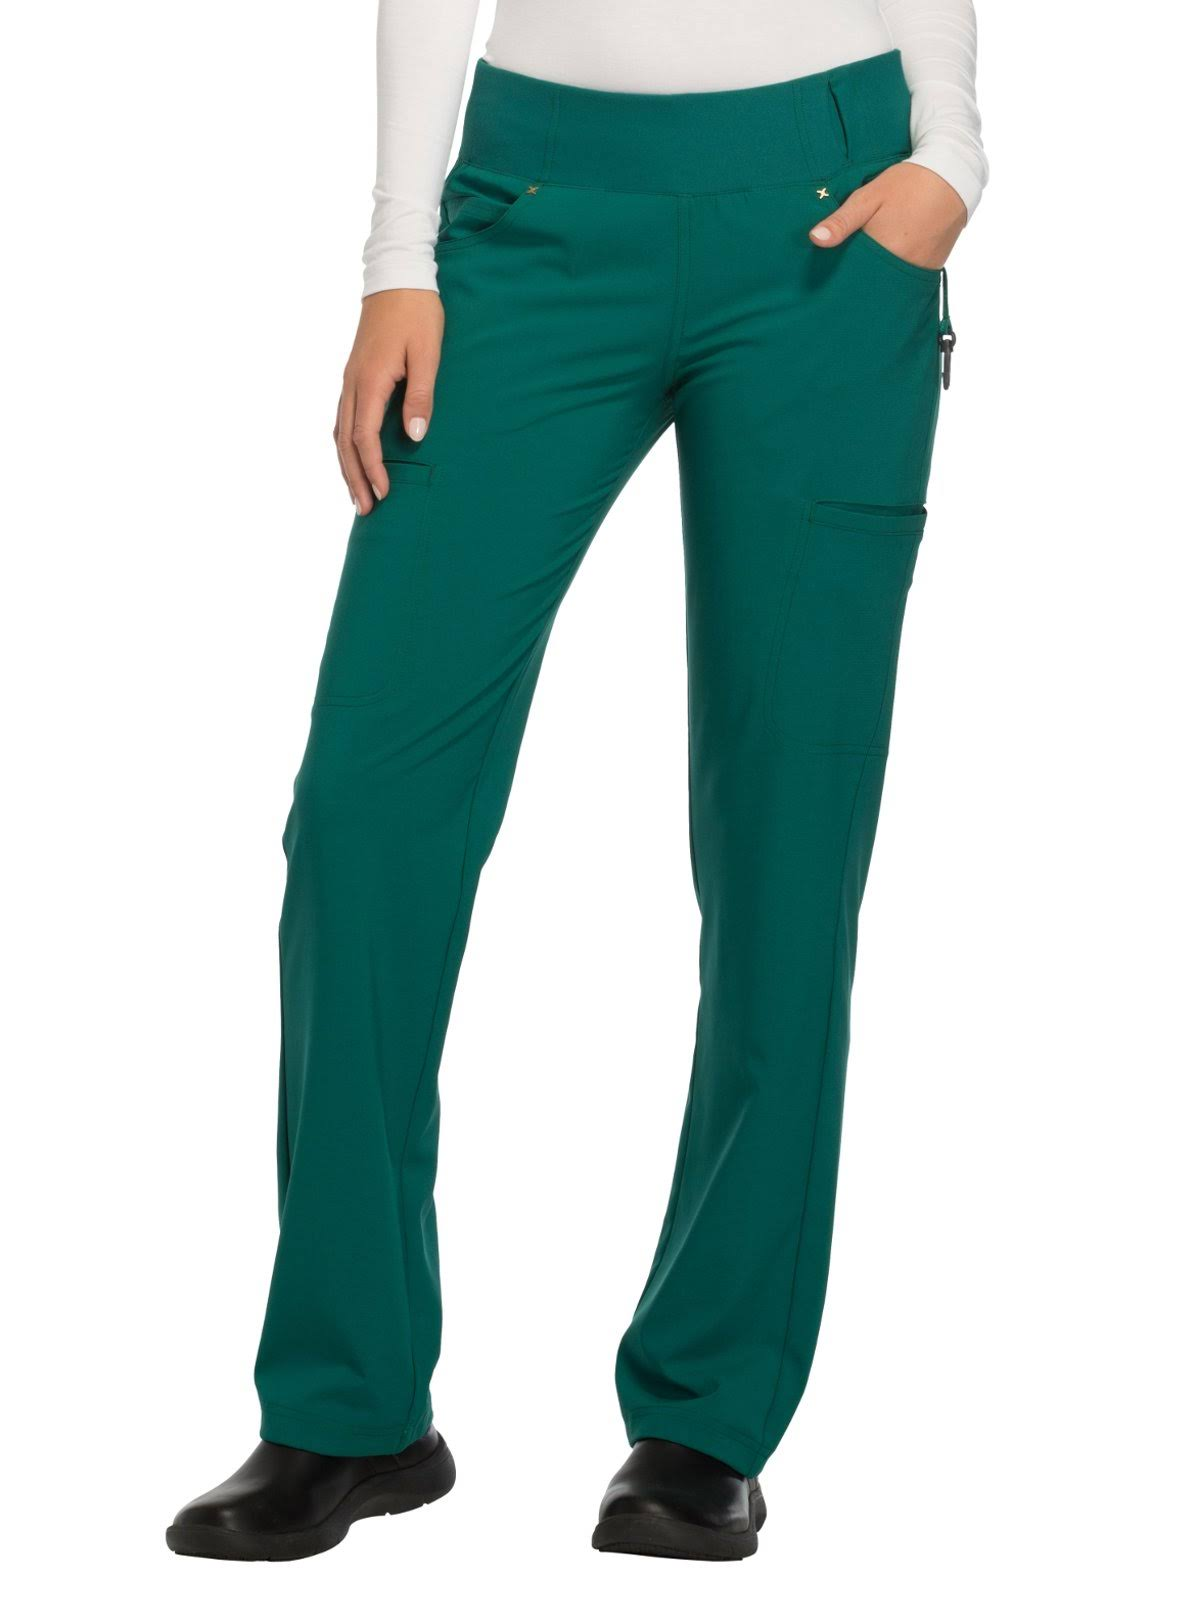 Cherokee CK002 Mid Rise Straight Leg Pull-On Pant - Hunter Green - S